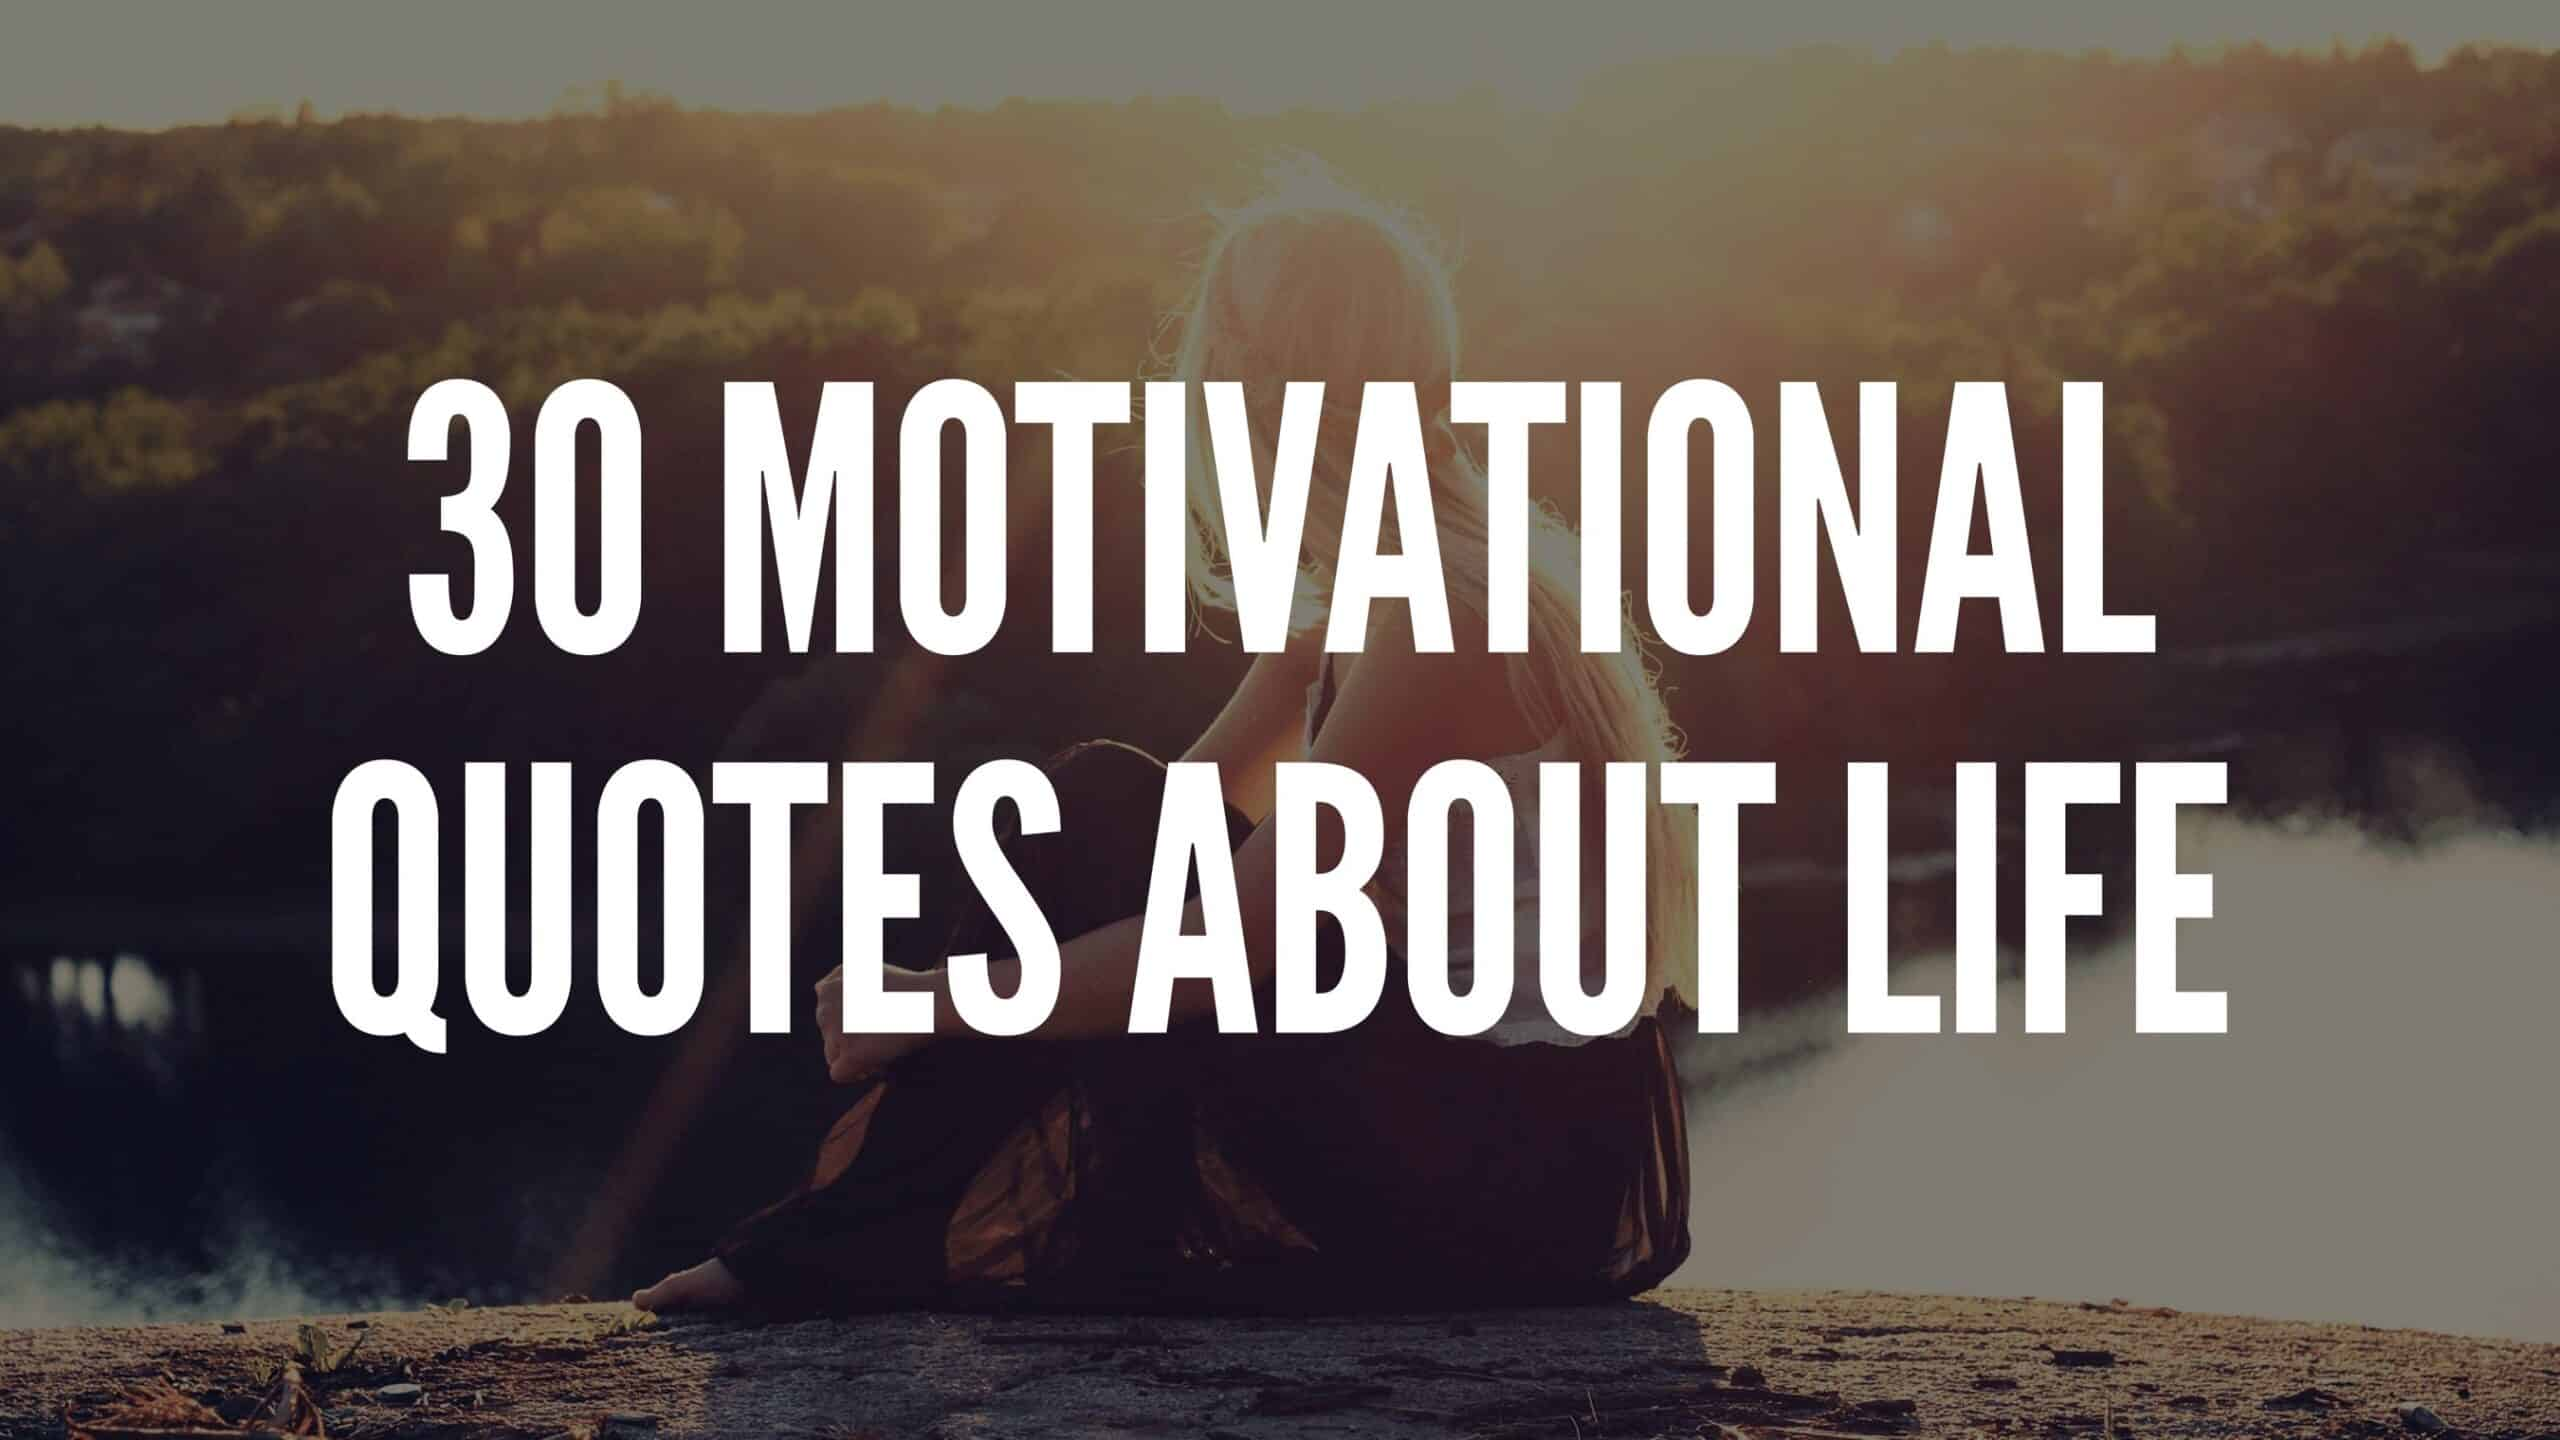 30 Motivational Quotes About Life